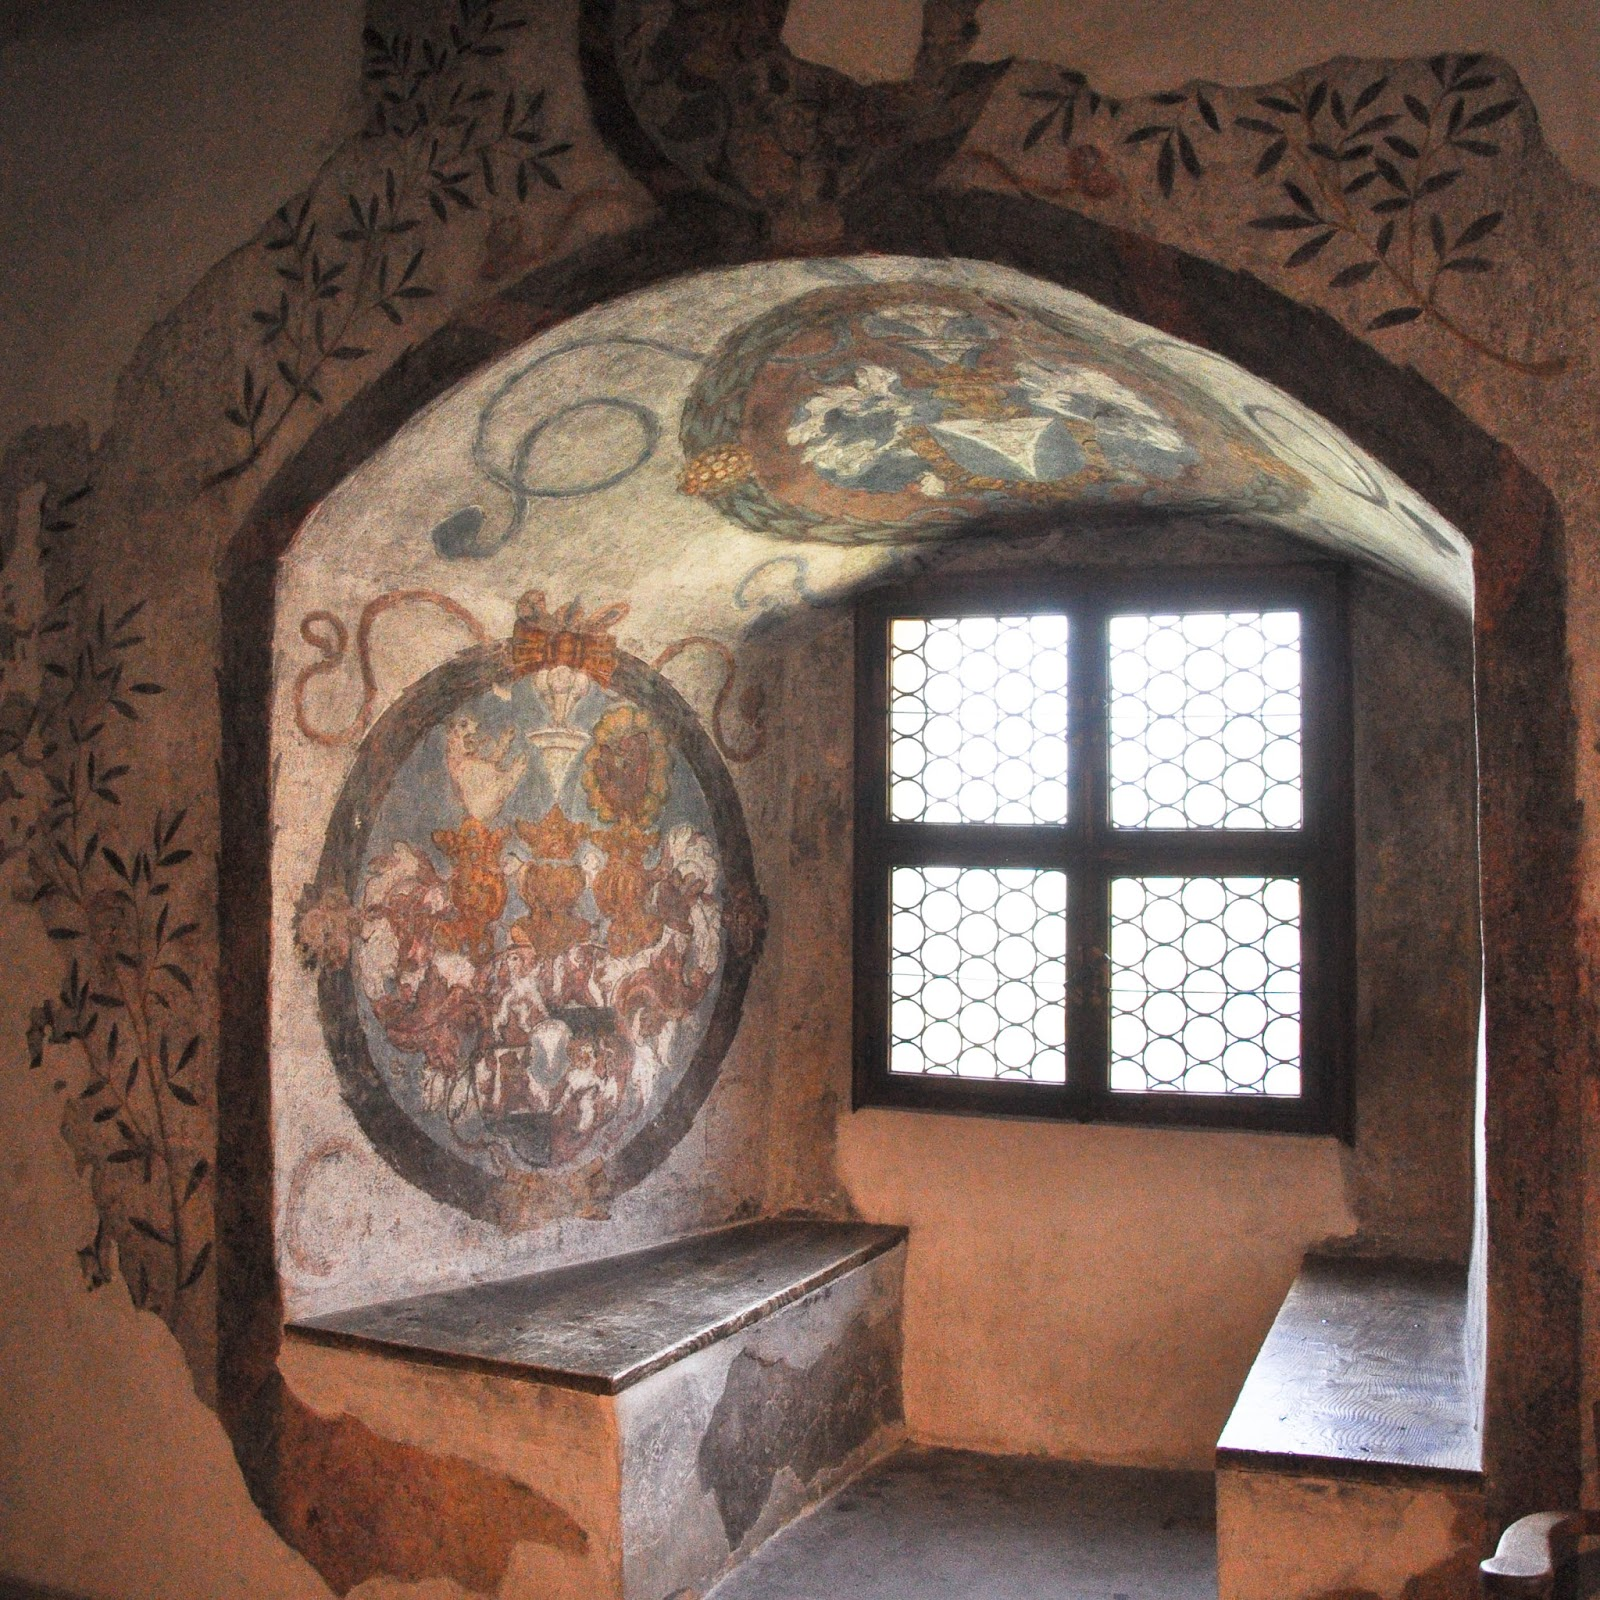 A frescoed window alcove, Runkelstein Castle, Bolzano, South Tyrol, Italy